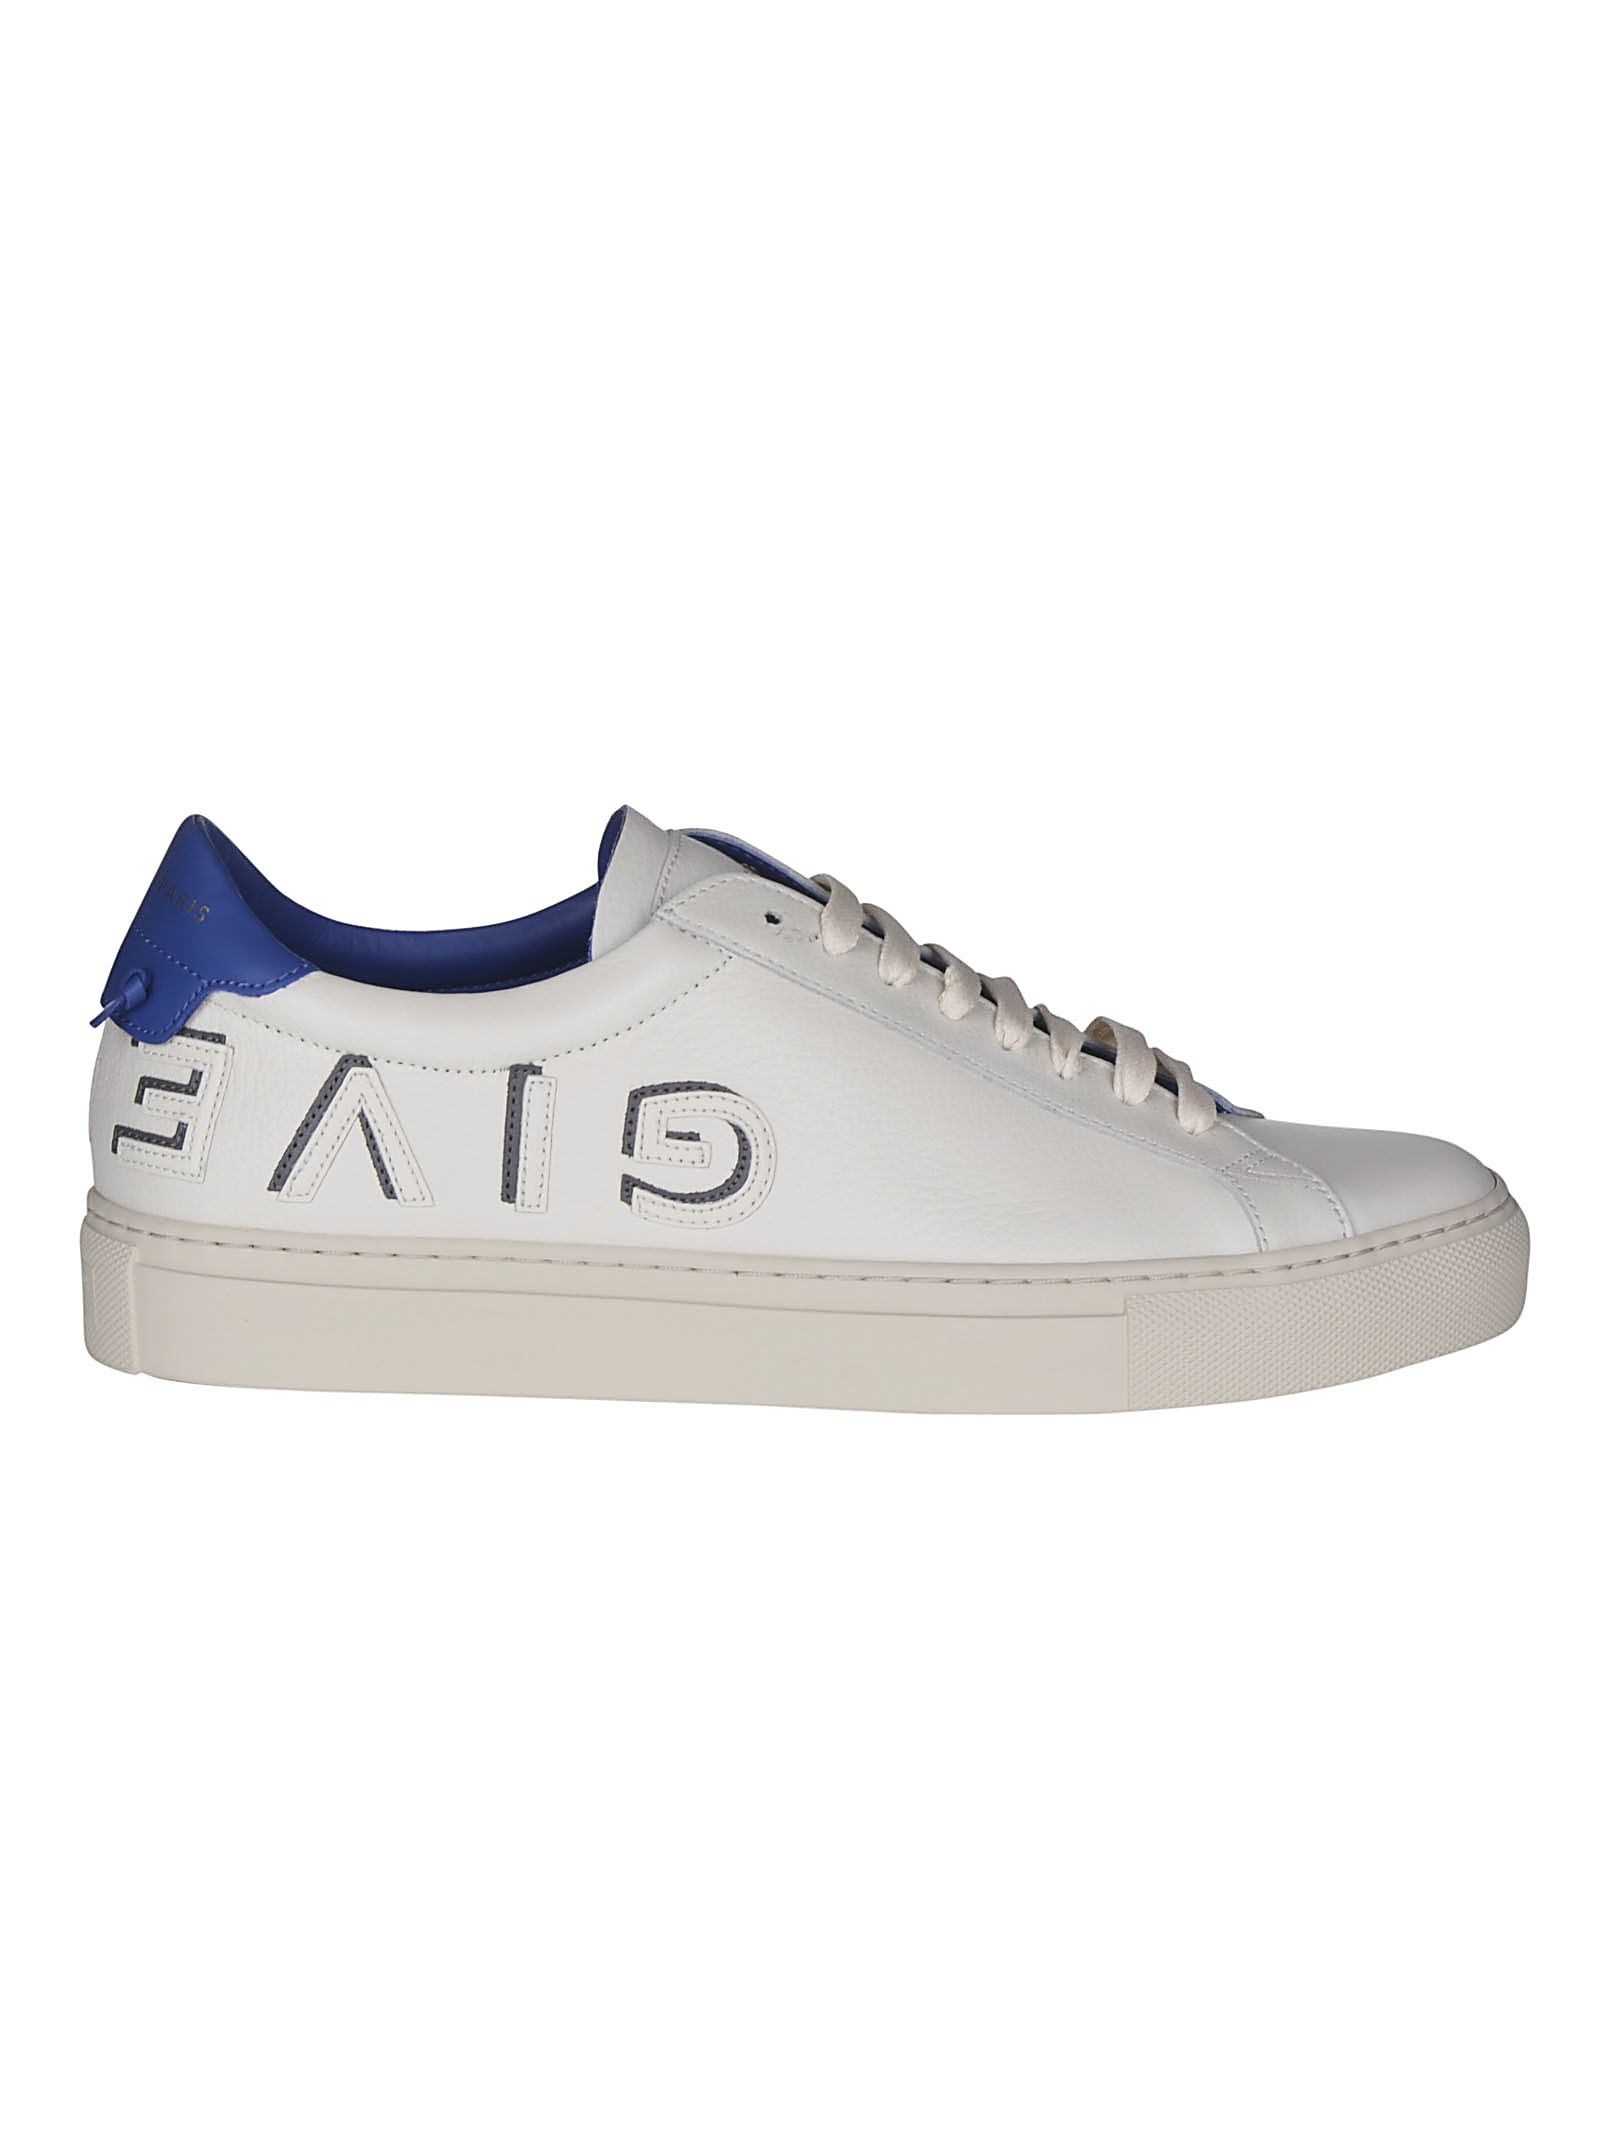 GIVENCHY SIDE PRINTED LOGO SNEAKERS